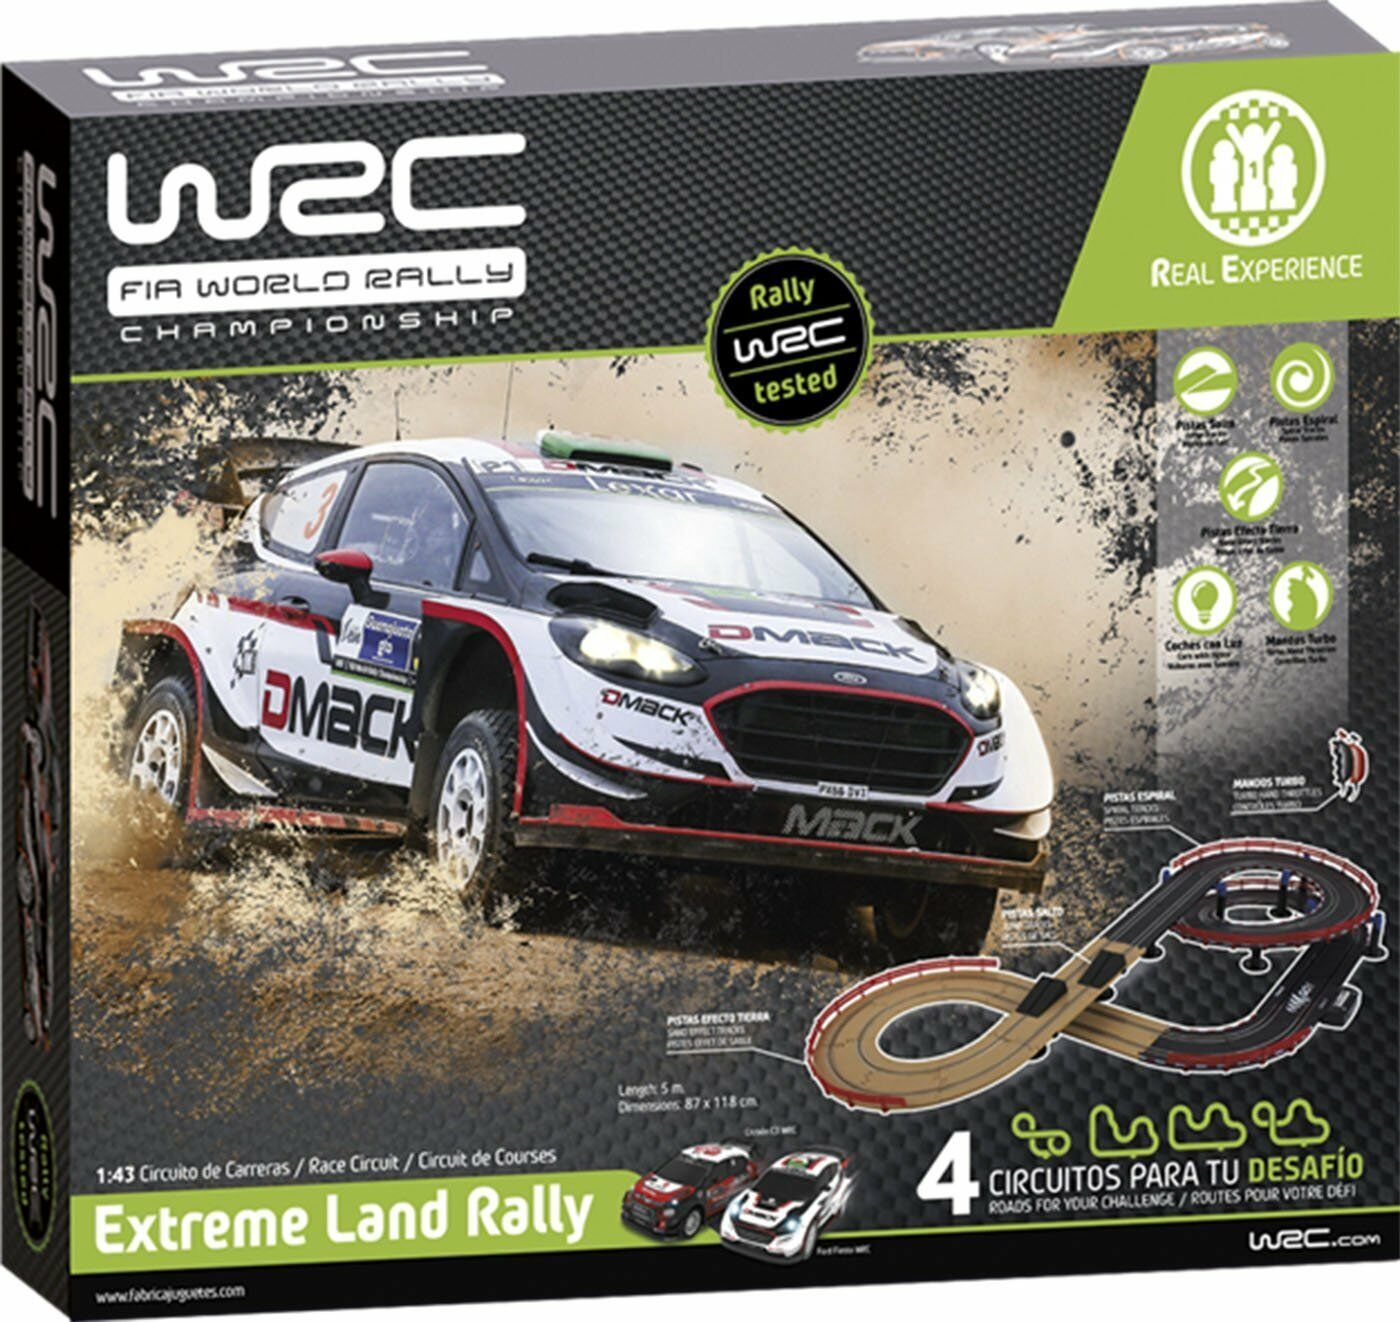 Circuito Fk1 : Fabricating of toys 91001. circuit scale 1 43 wrc extreme land rally